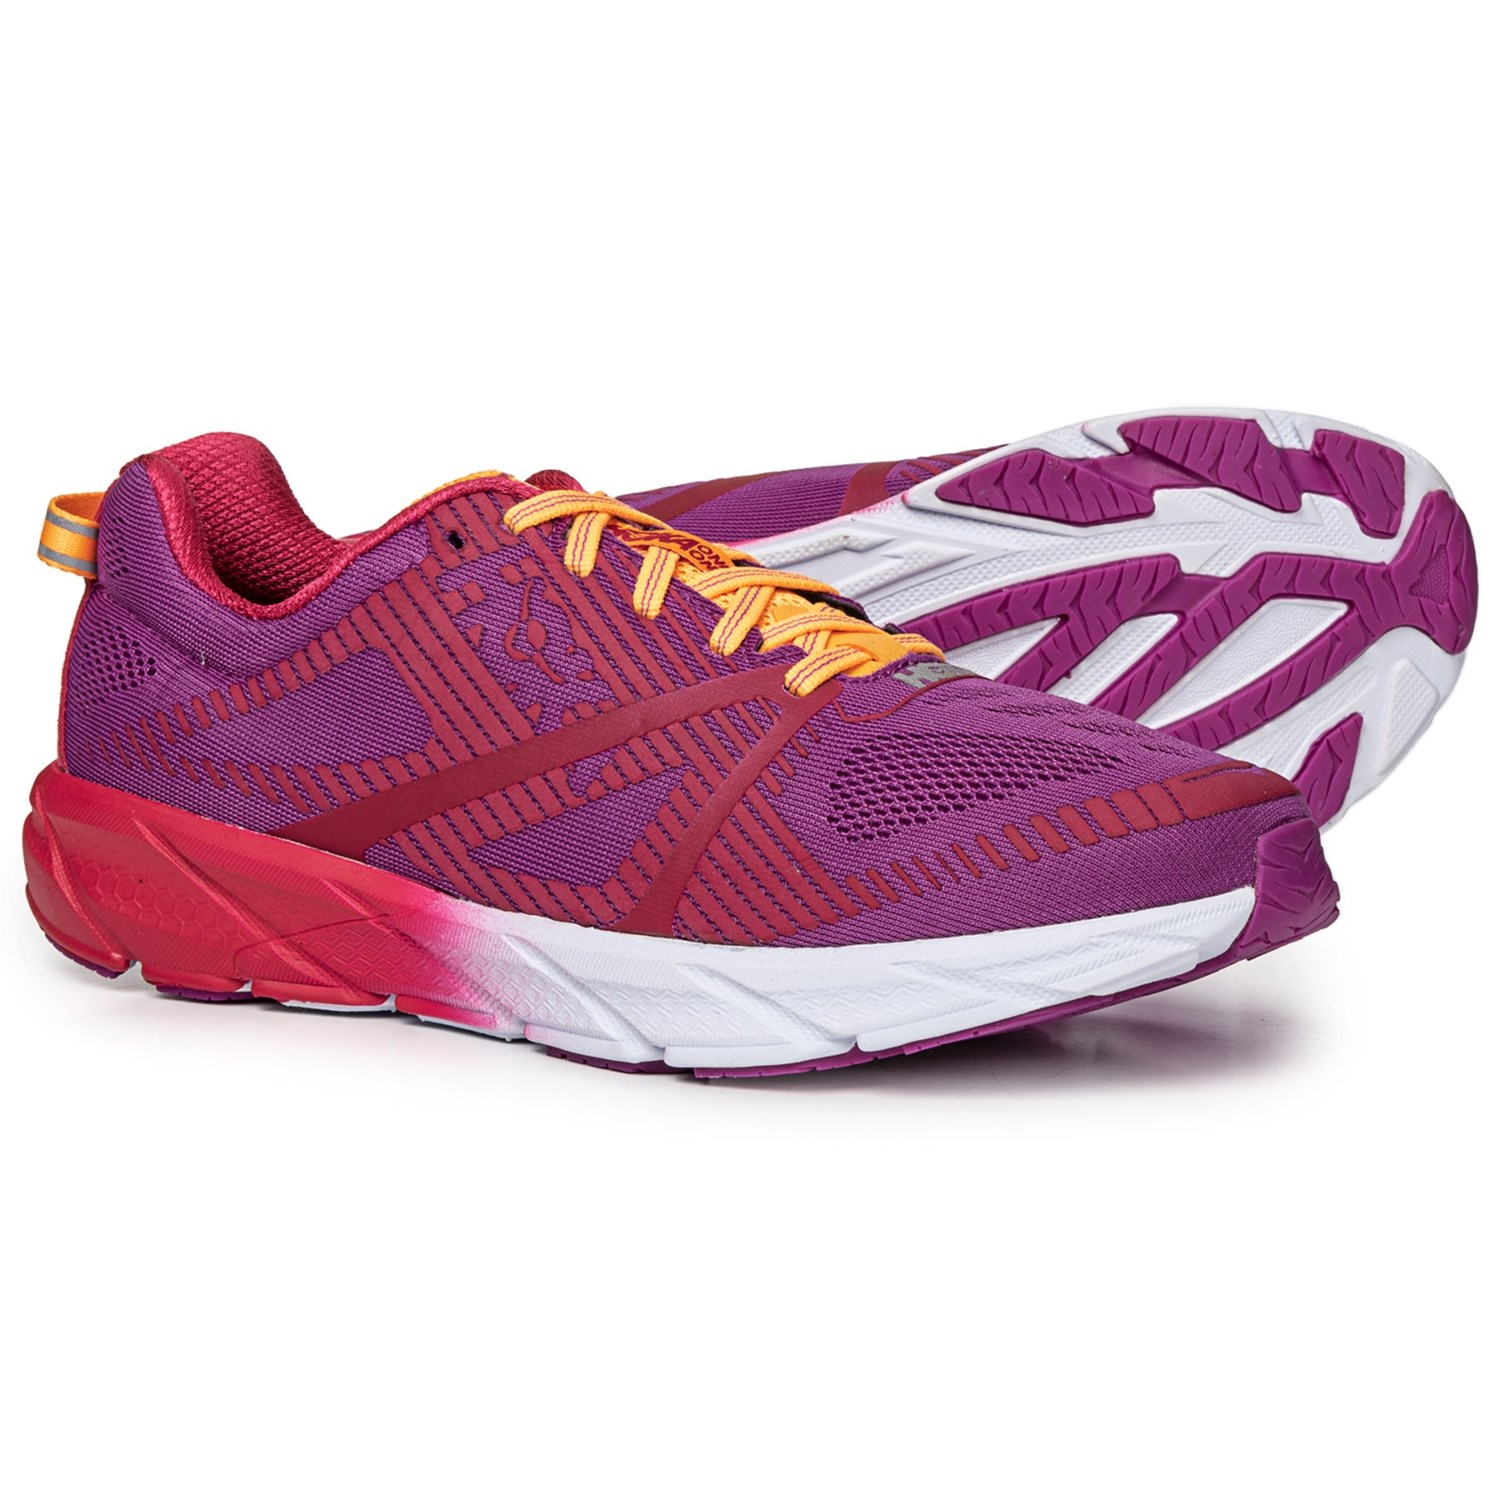 Hoka One One Tracer 2 Running Shoes (For Women)